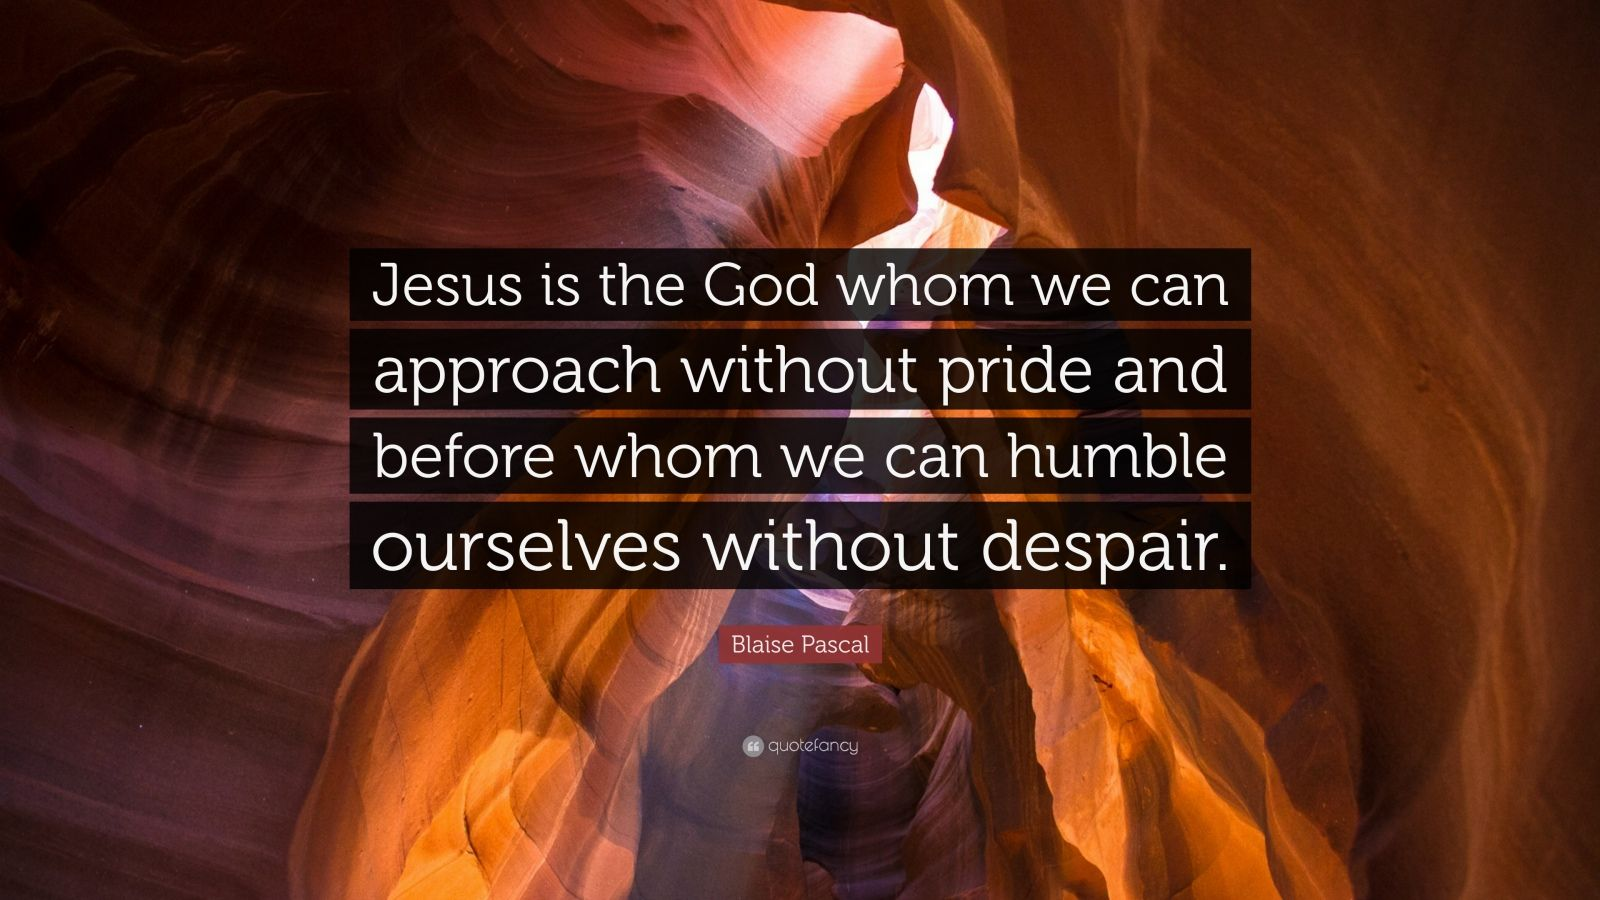 """Blaise Pascal Quote: """"Jesus is the God whom we can approach without pride and before whom we can humble ourselves without despair."""""""